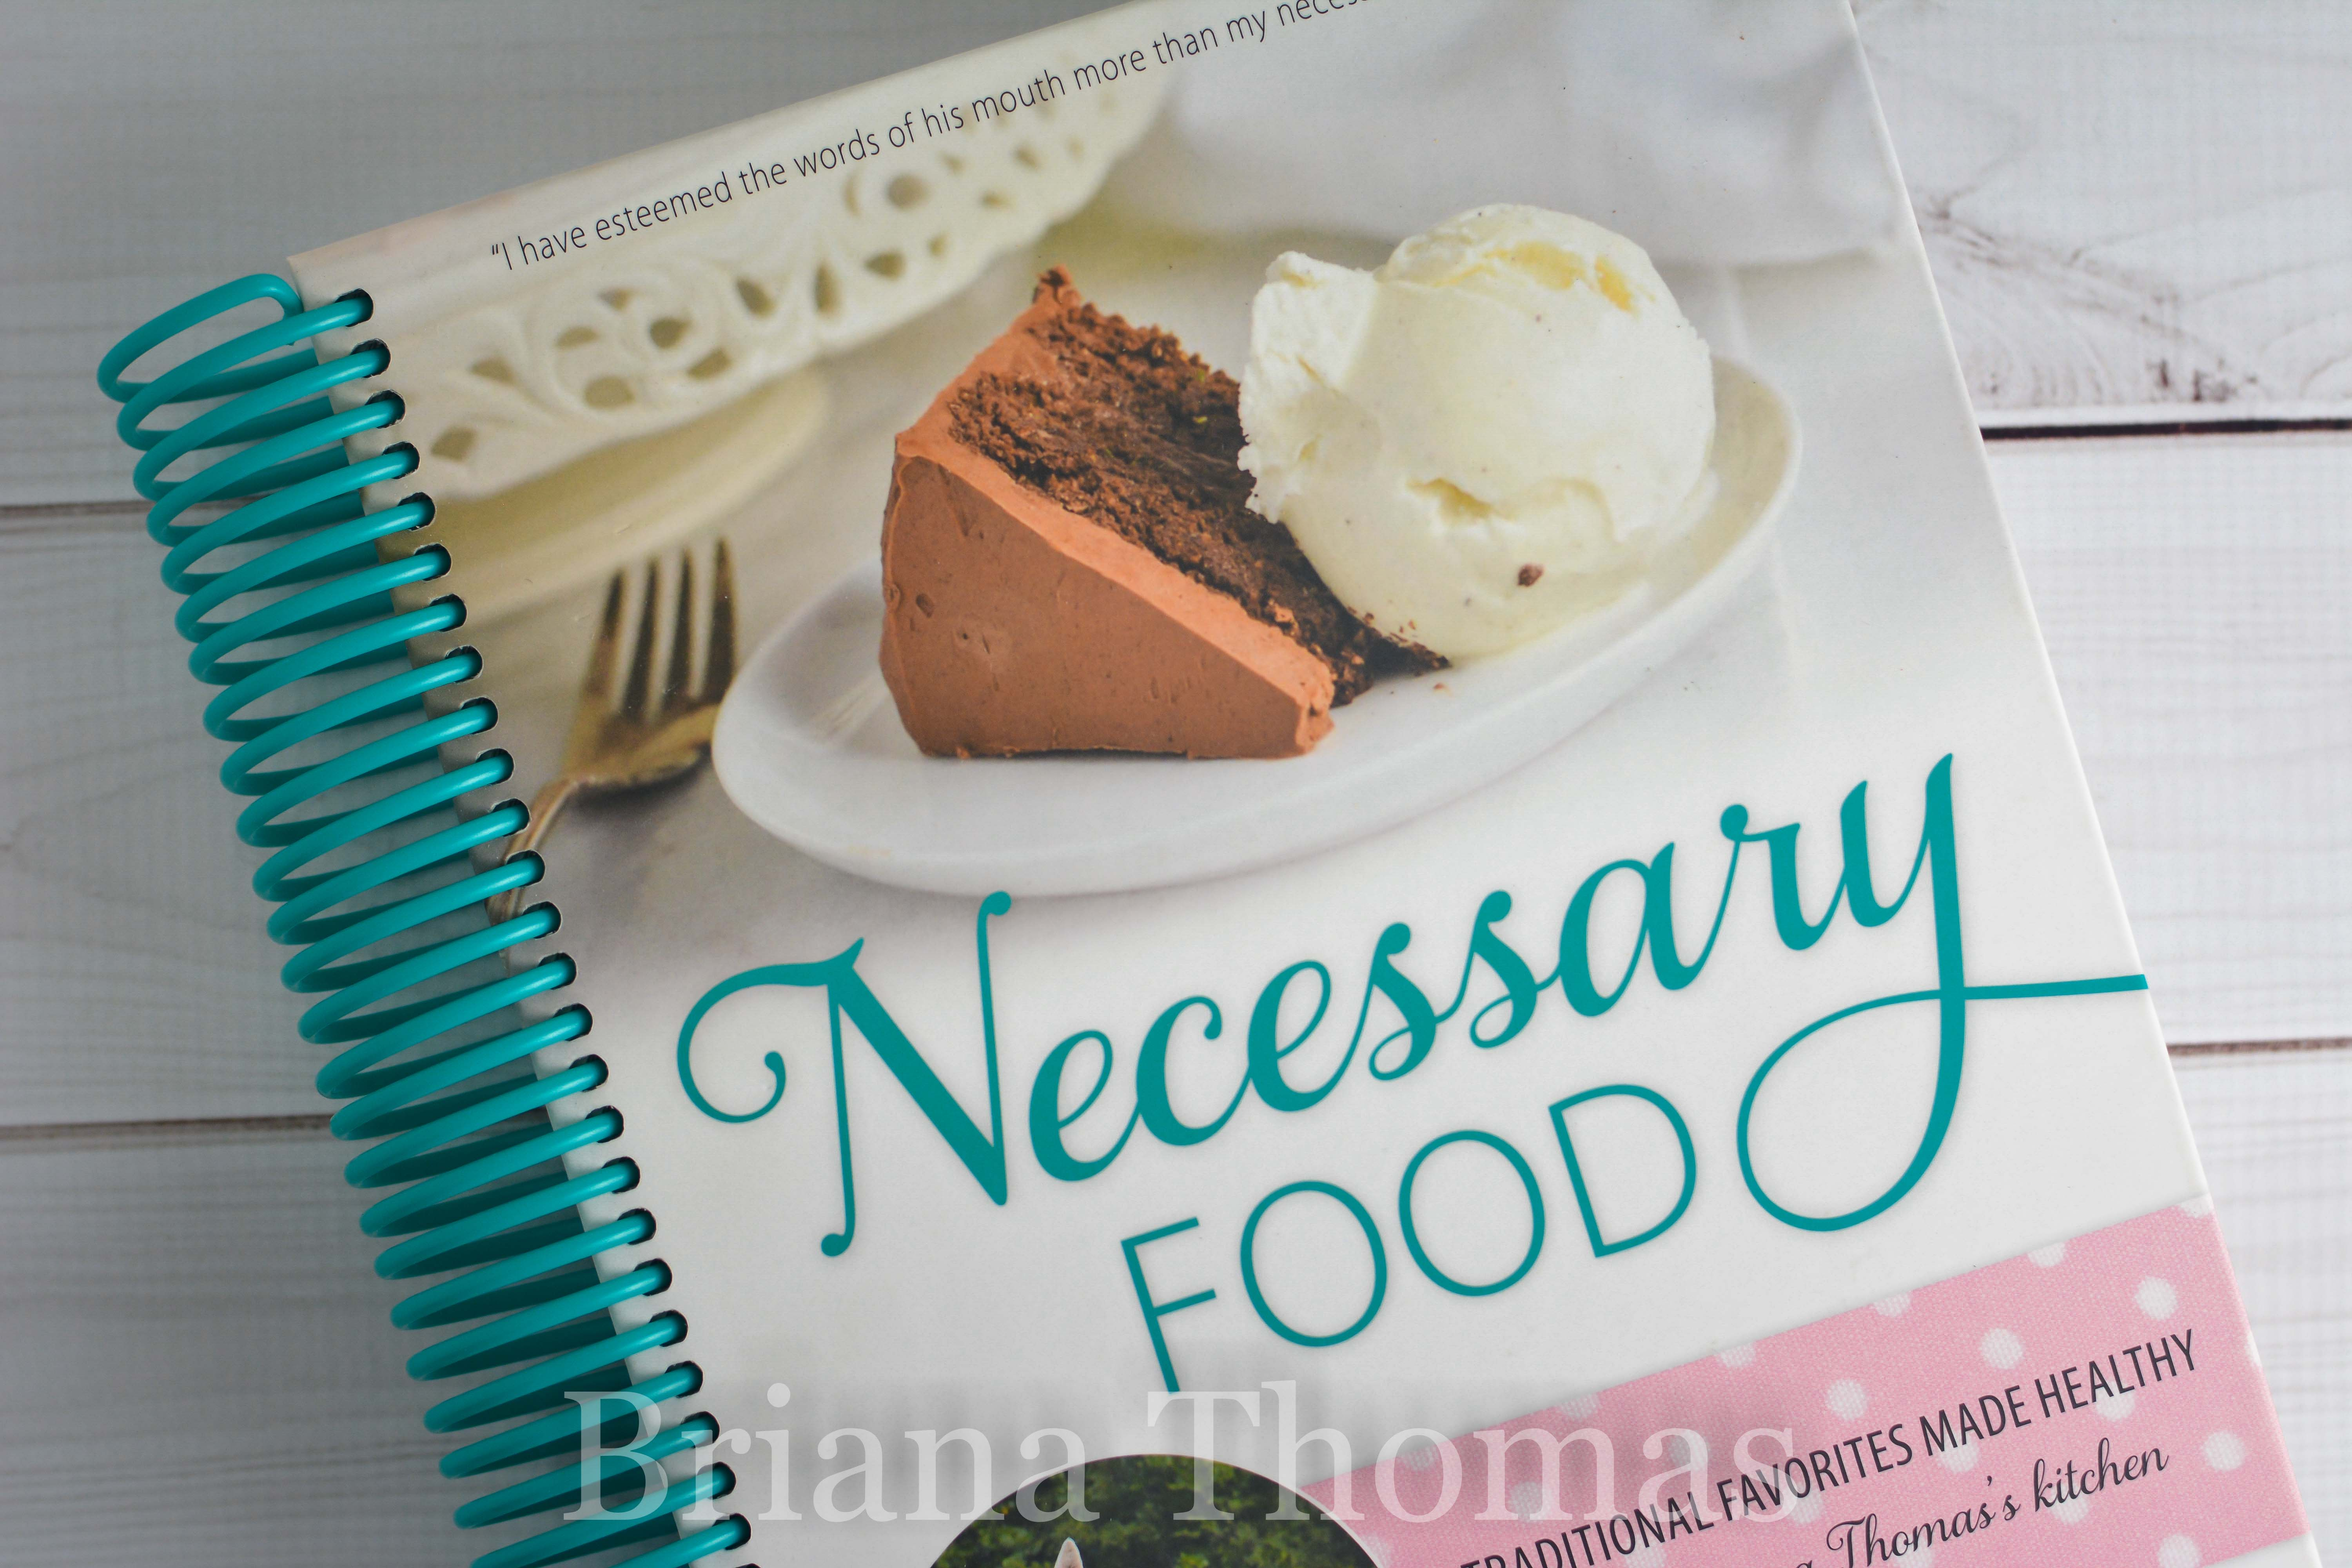 I'm giving away a copy of my cookbook, Necessary Food! It's a hard cover, spiral bound, full color low-glycemic cookbook full of sugar-free recipes!